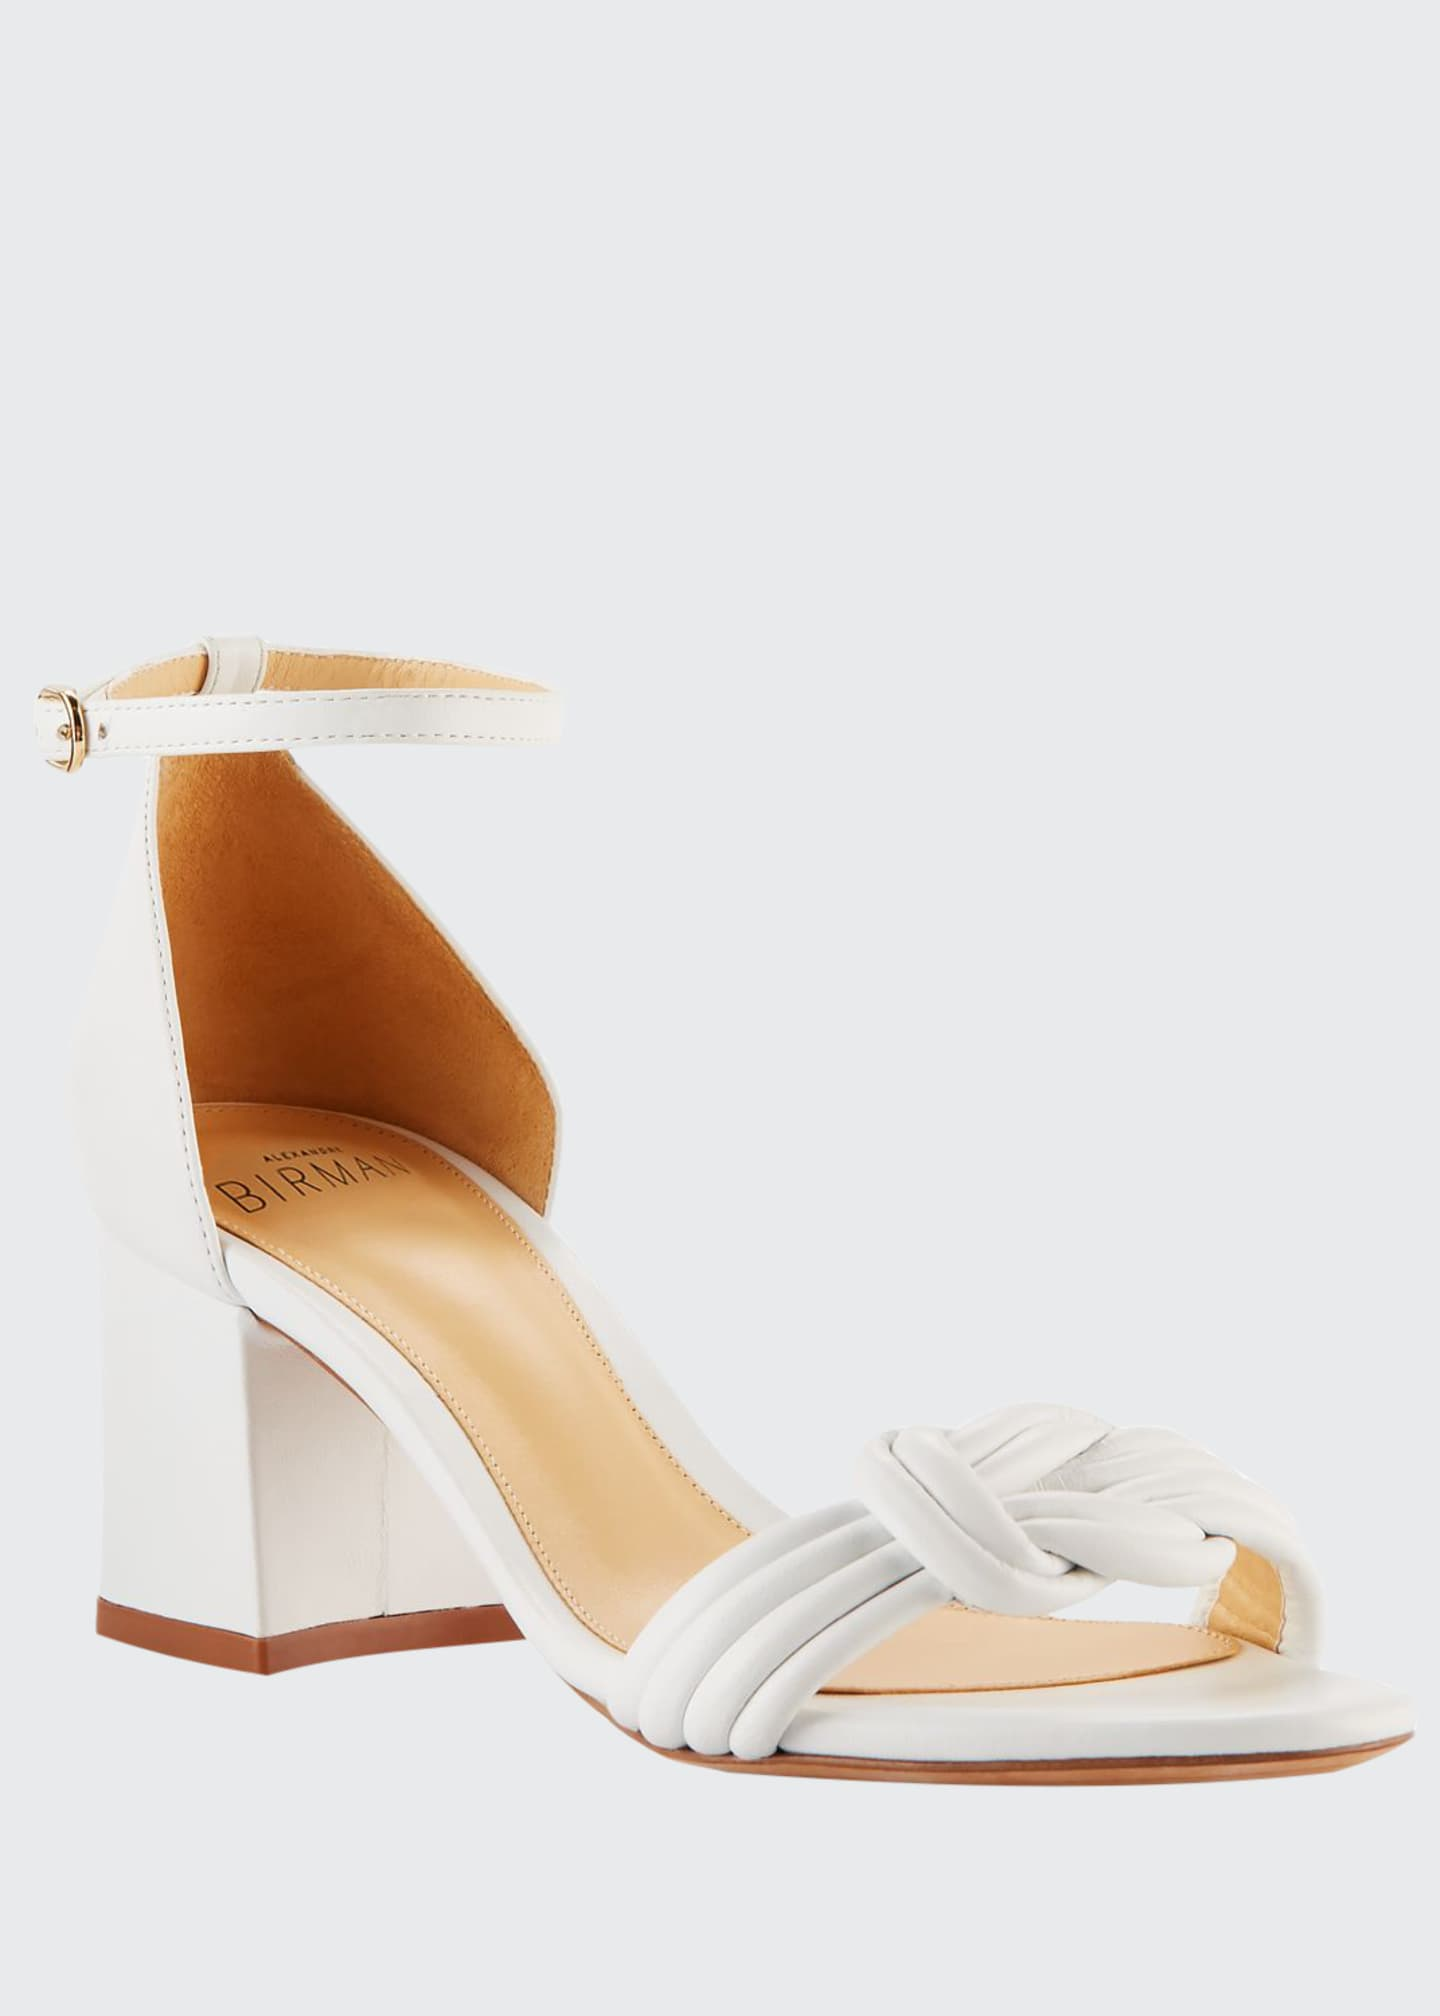 Alexandre Birman Vicky Knotted Leather Low-heel Sandals